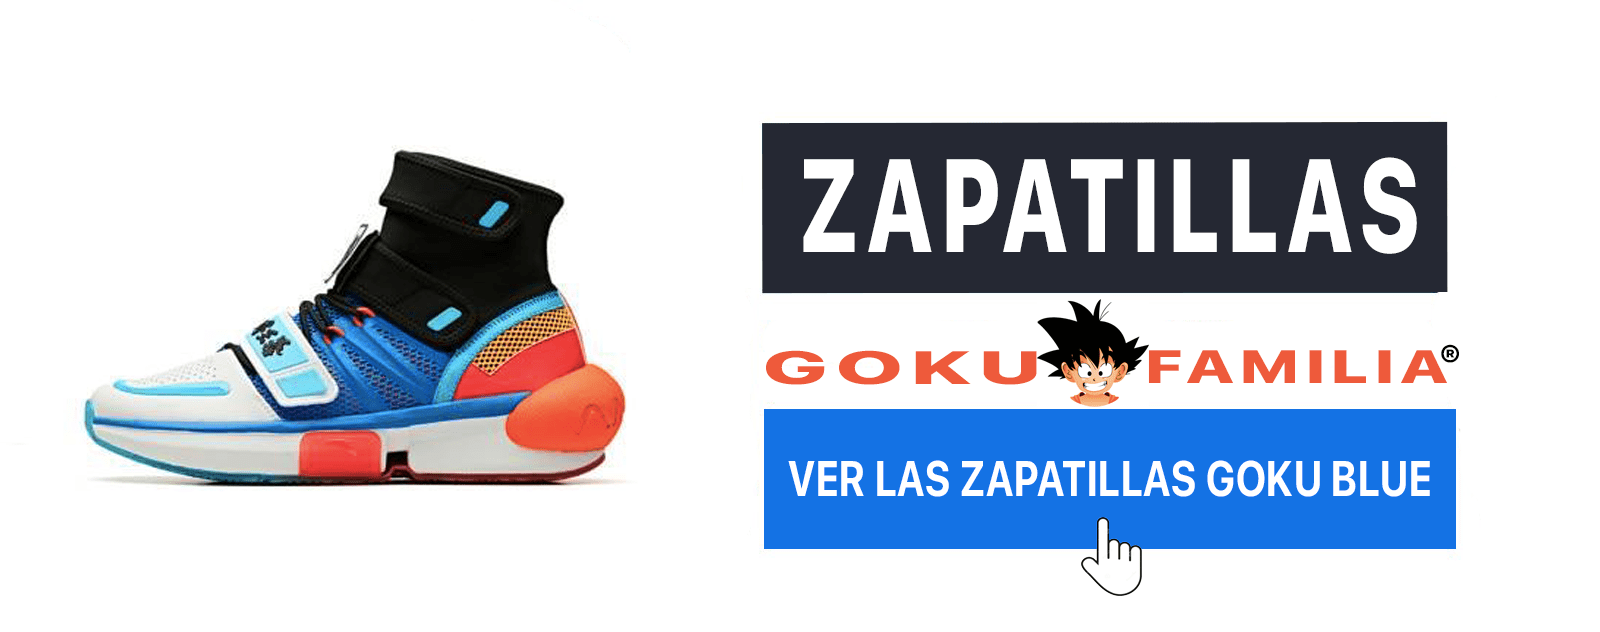 Zapatillas Goku SSJ Blue